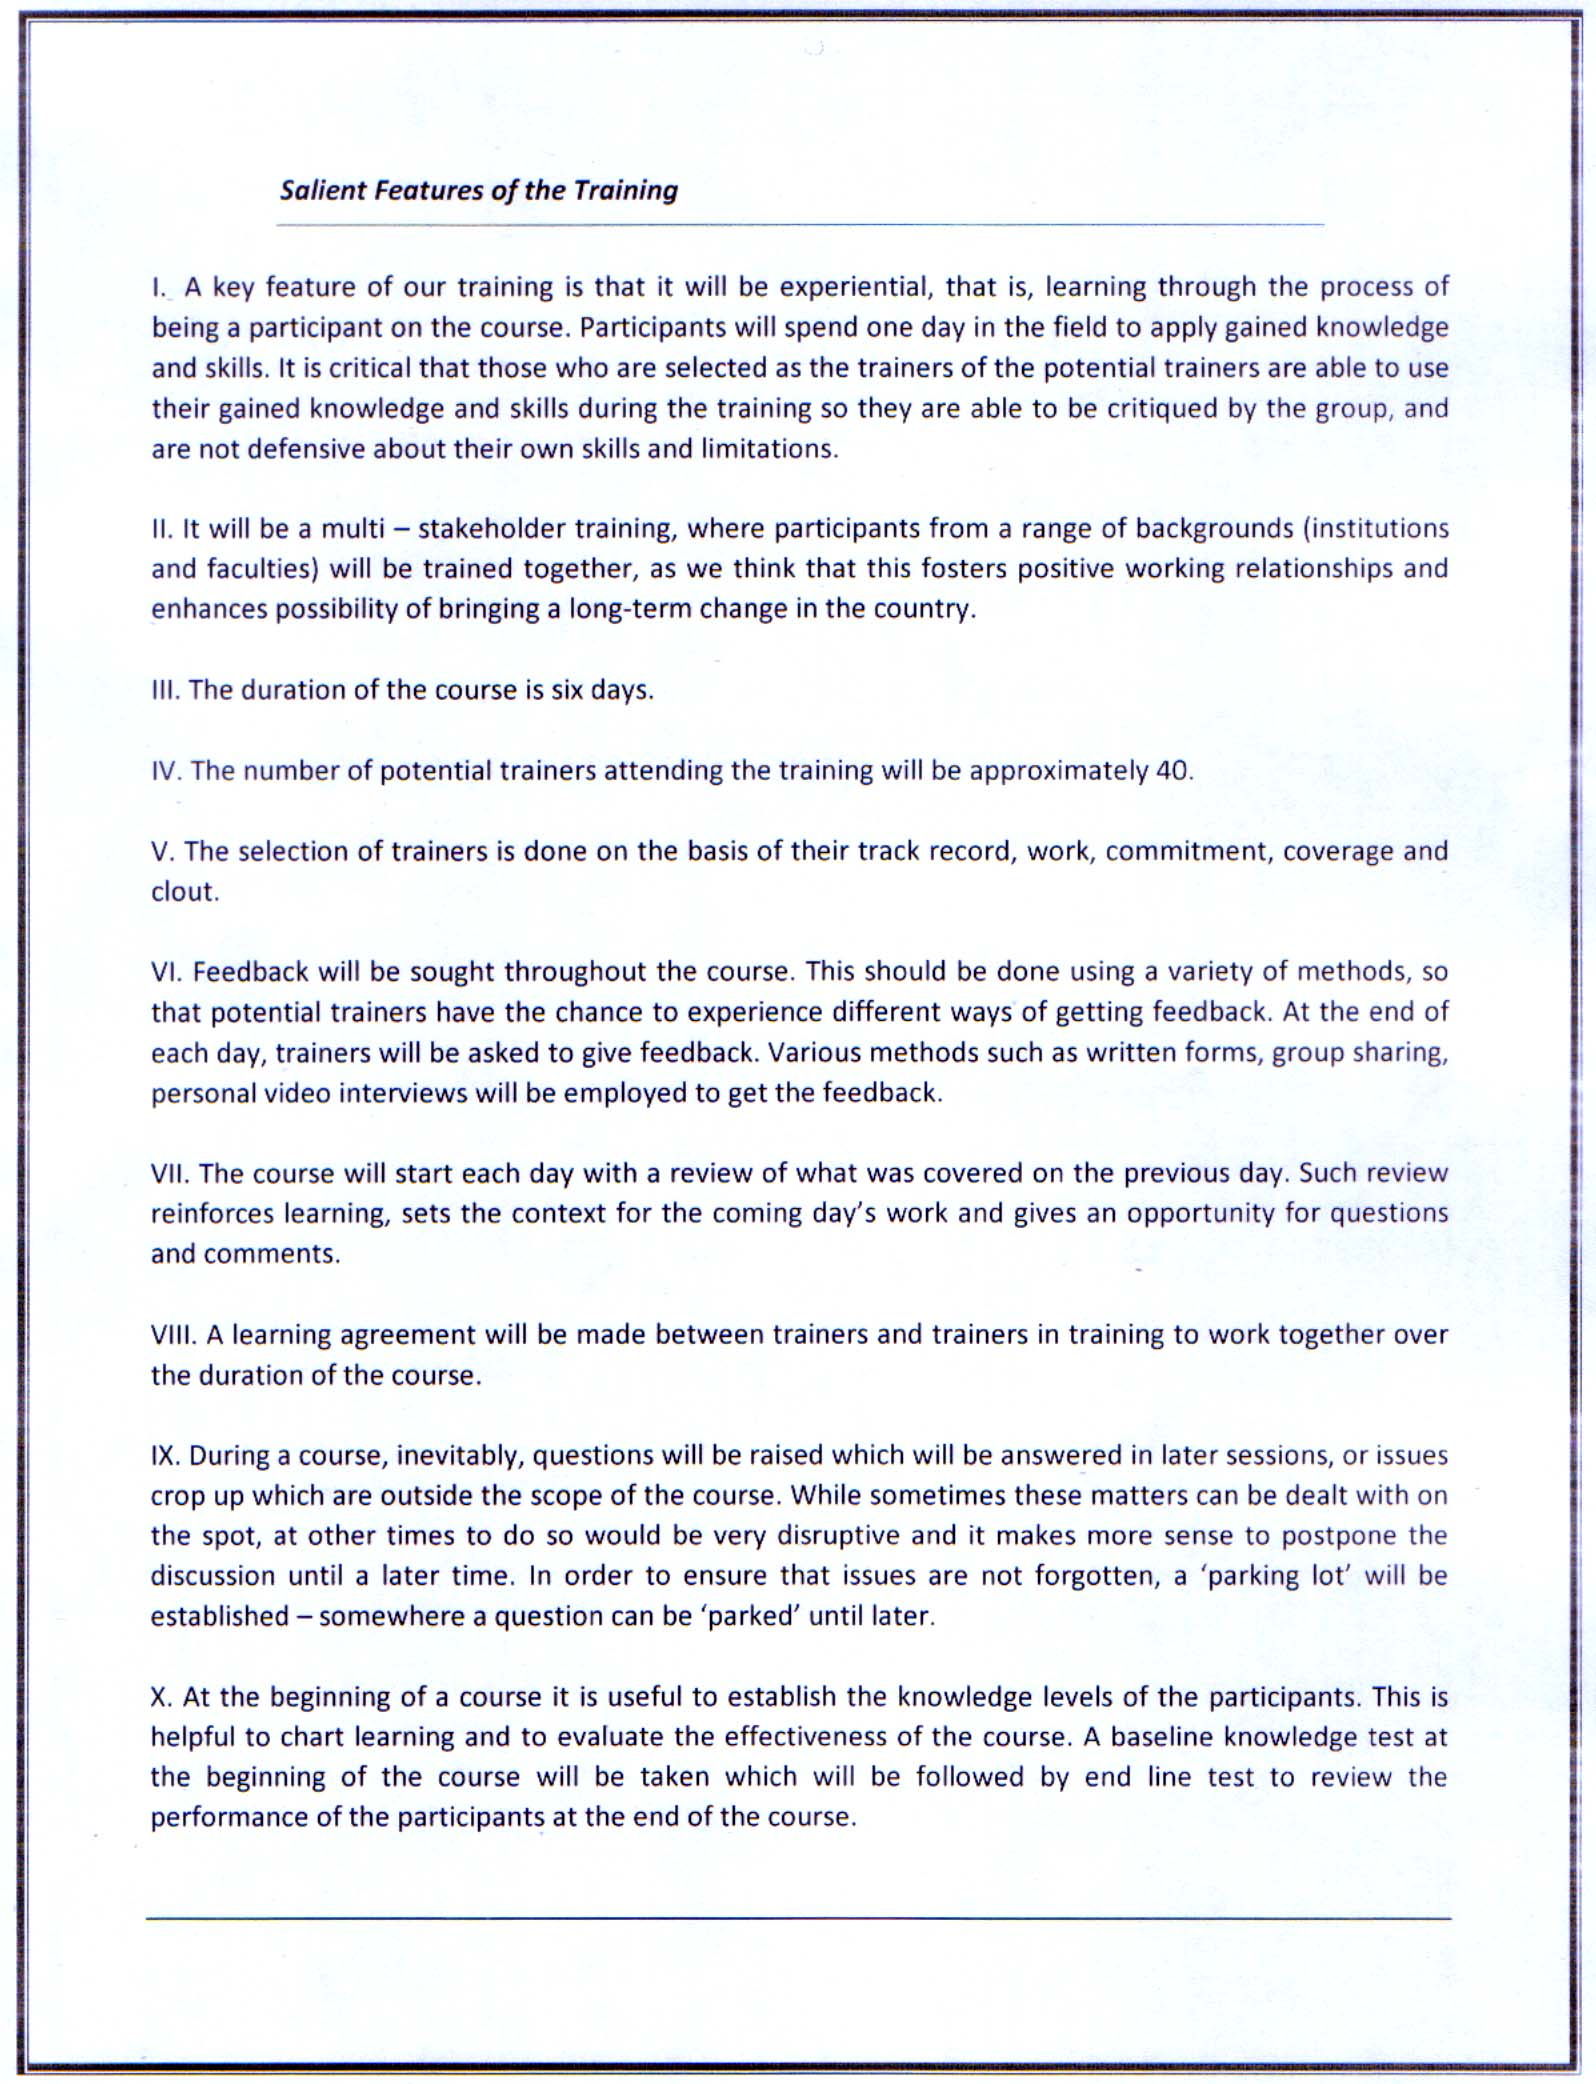 Salient Features Of Tot Advancing Youth Social Entrepreneurship In